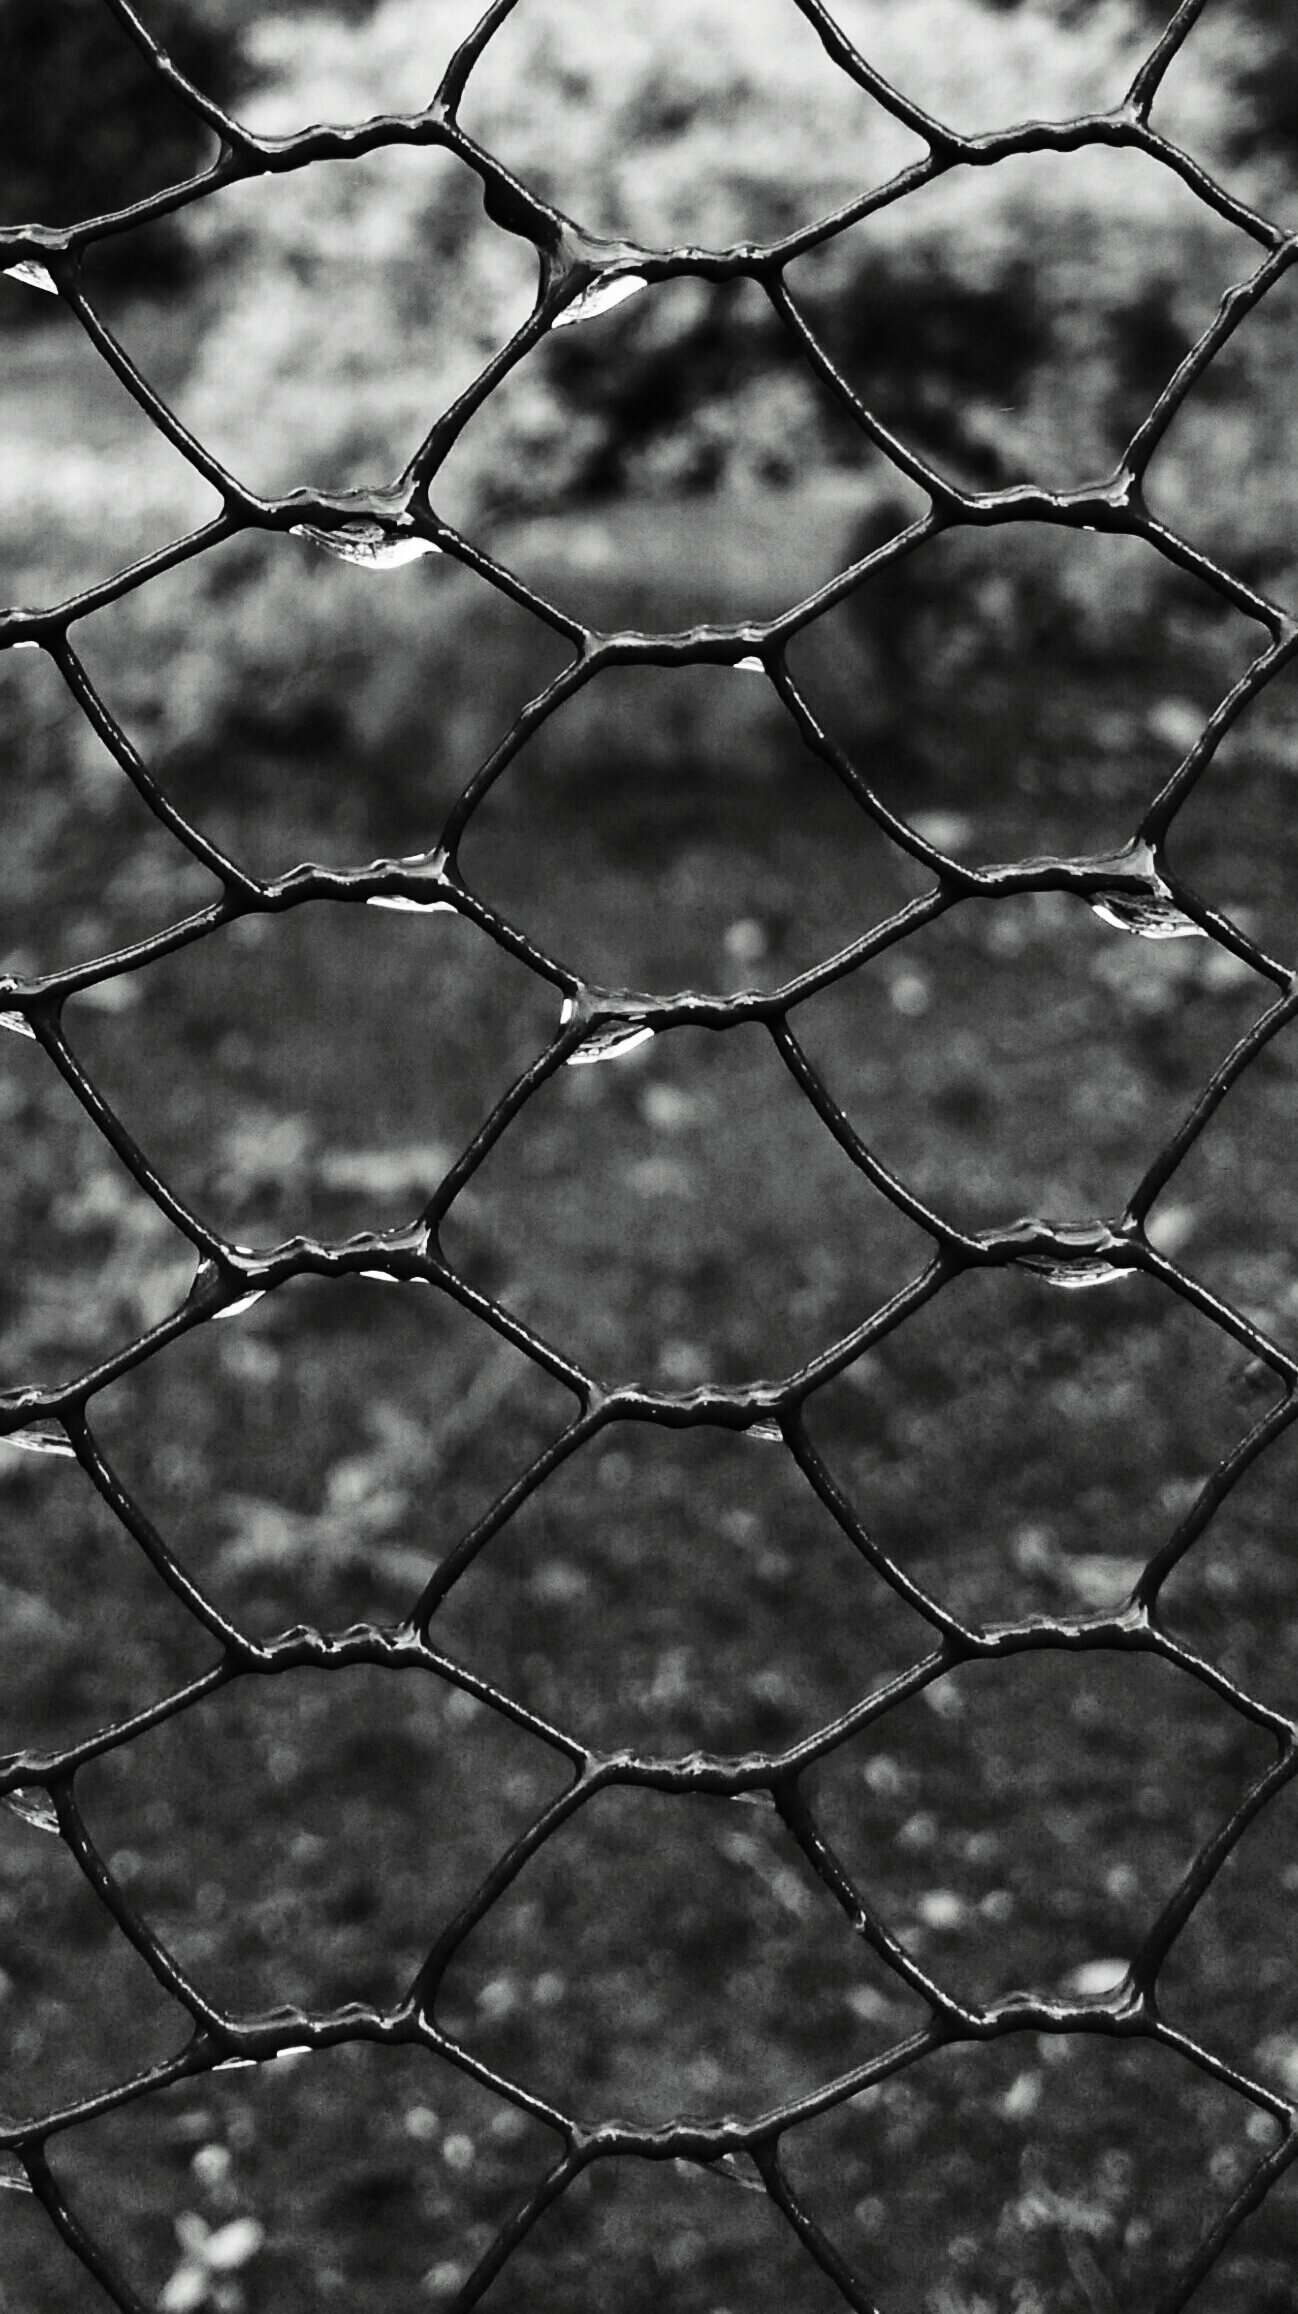 Fence - Black and White Photos by Behindthelight5 on PicsArt